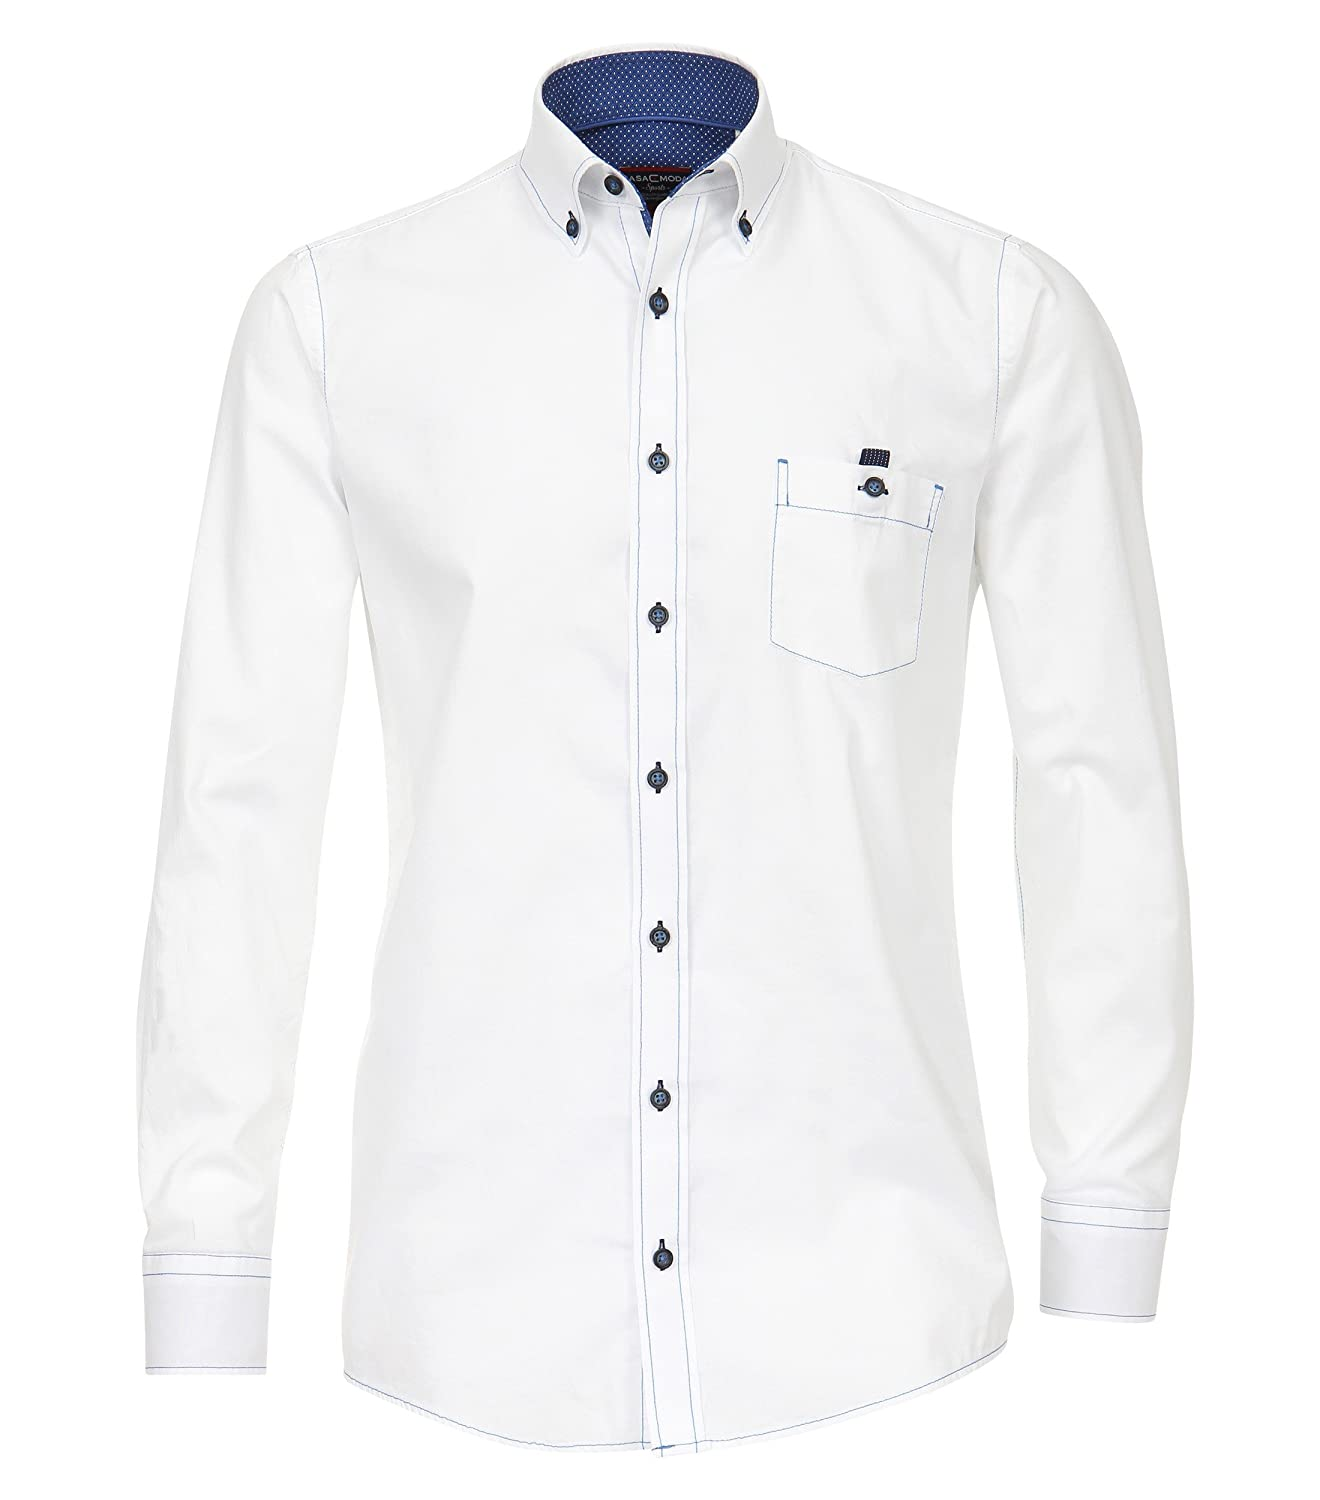 MichaelaX-Fashion-Trade - Camisa Formal - Básico - con Botones - Manga Larga - para Hombre